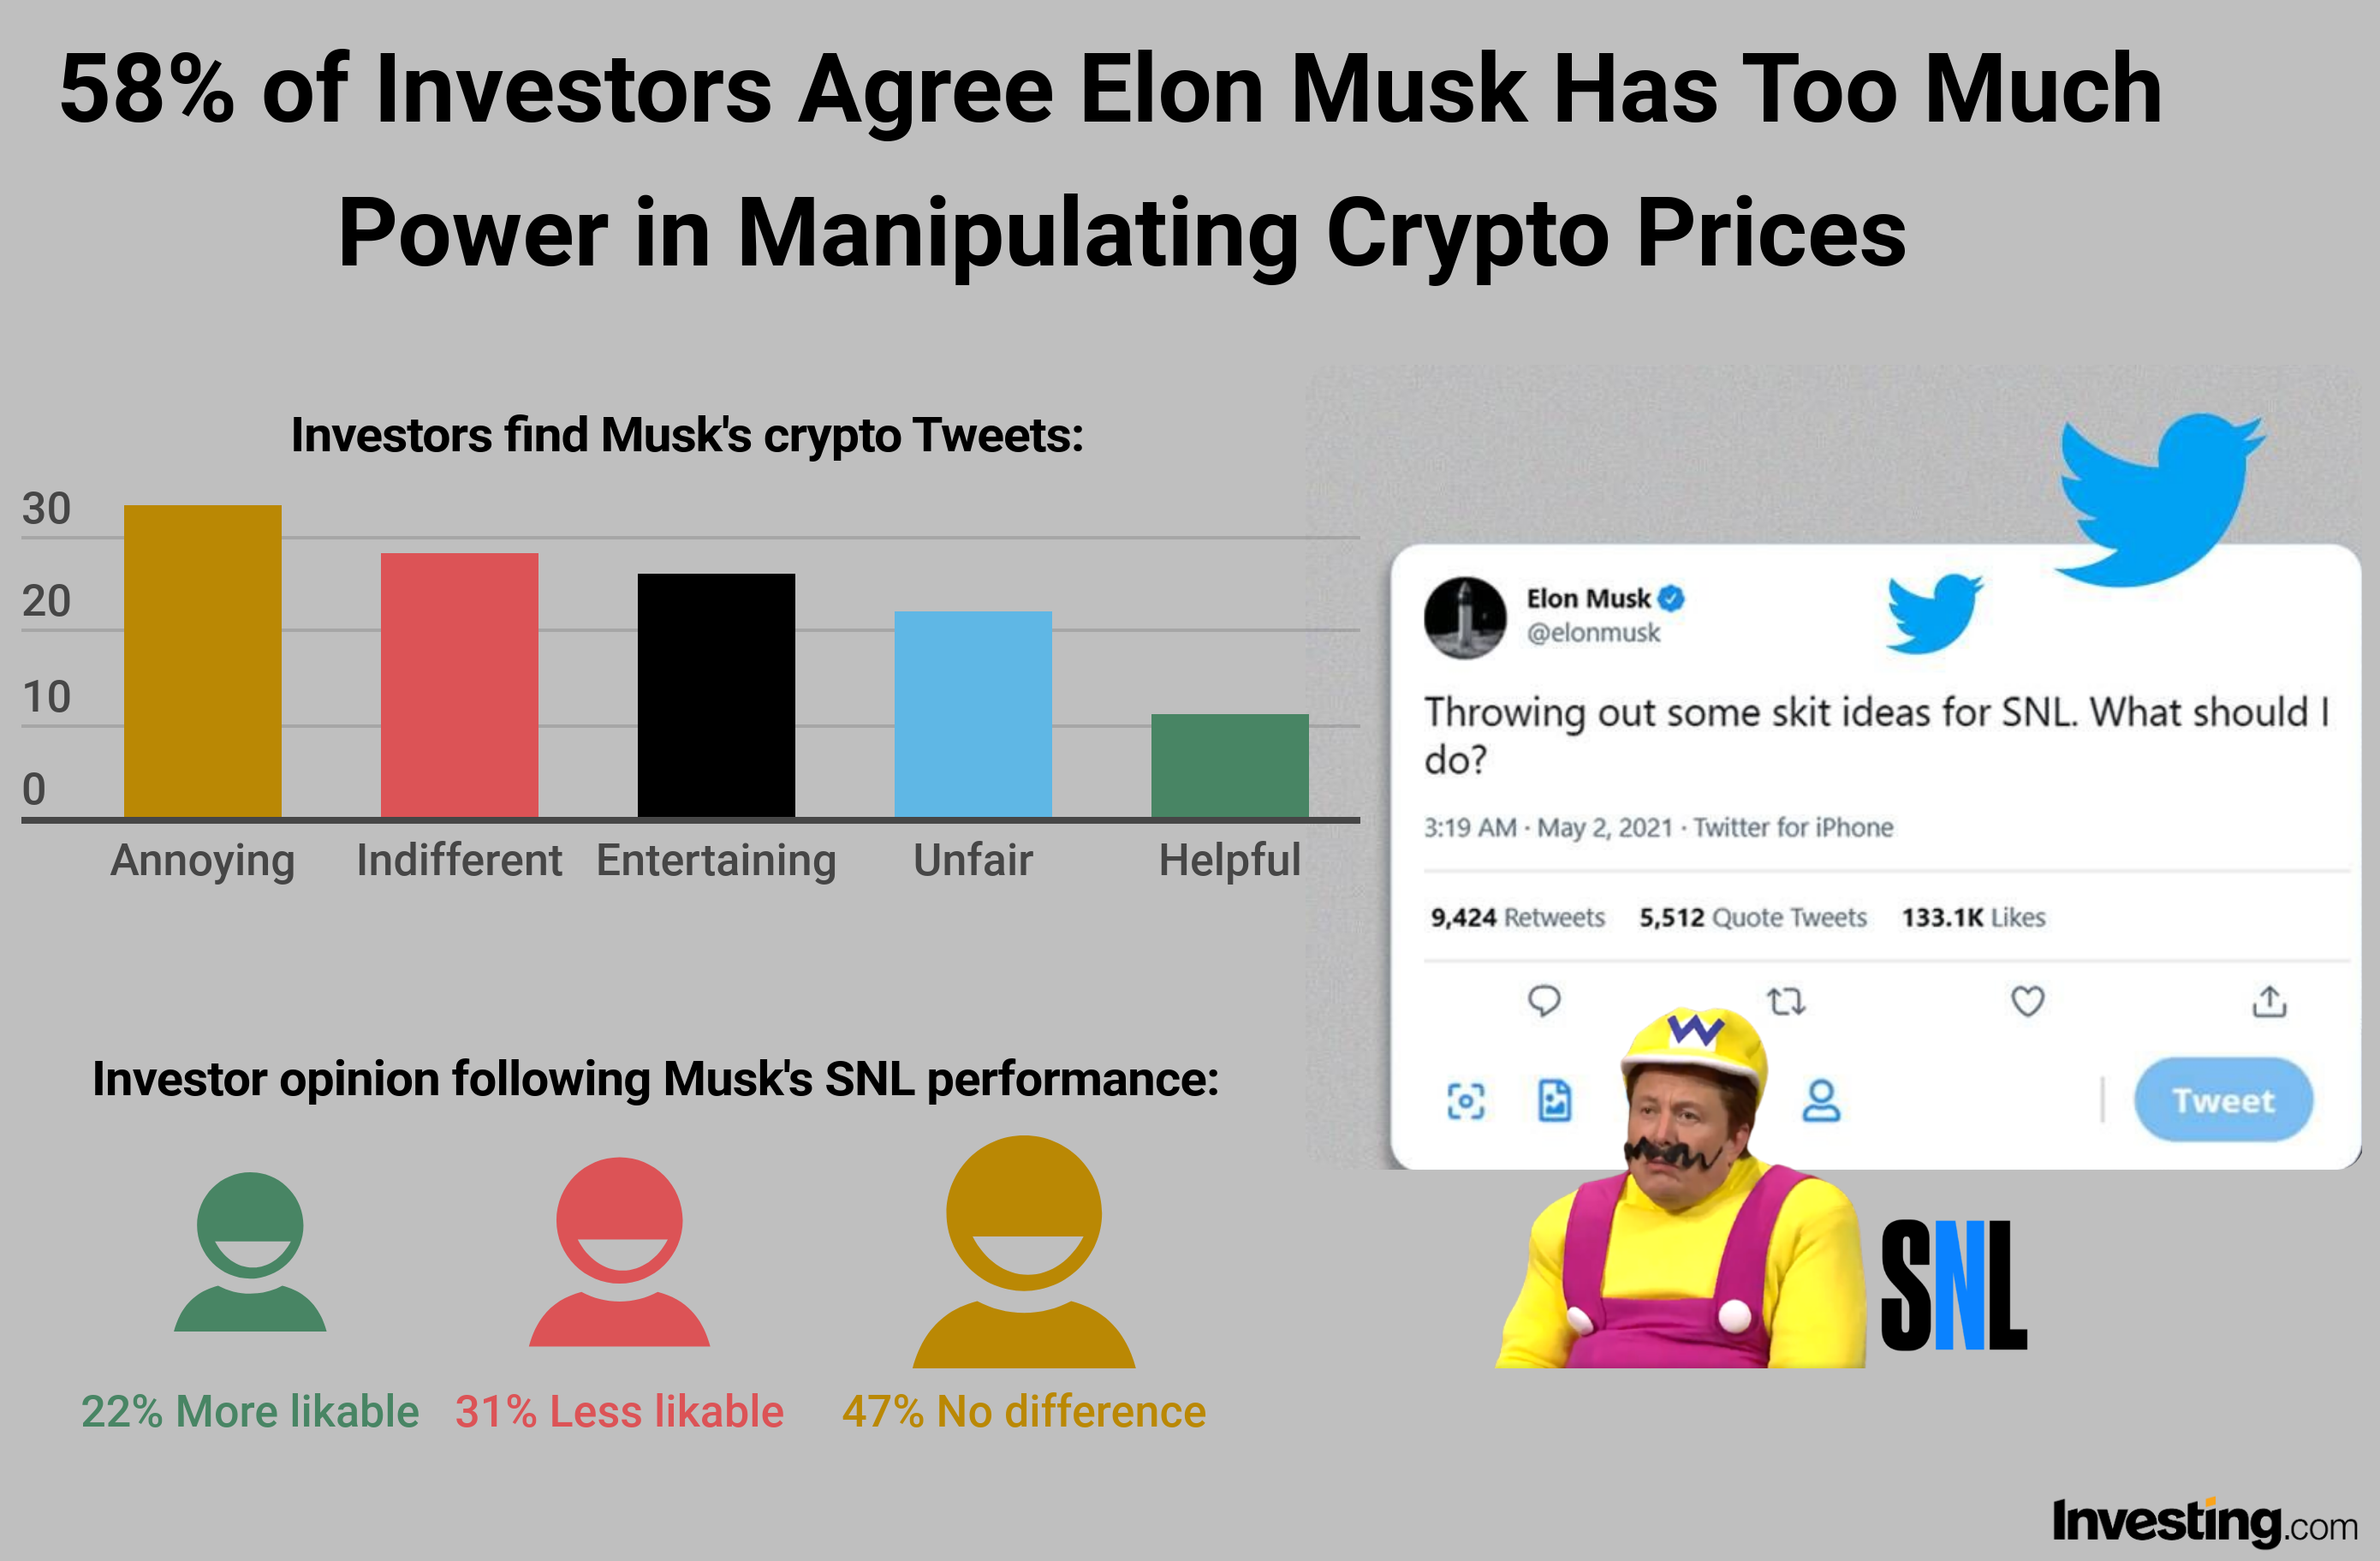 Musk has too much power in crypto market